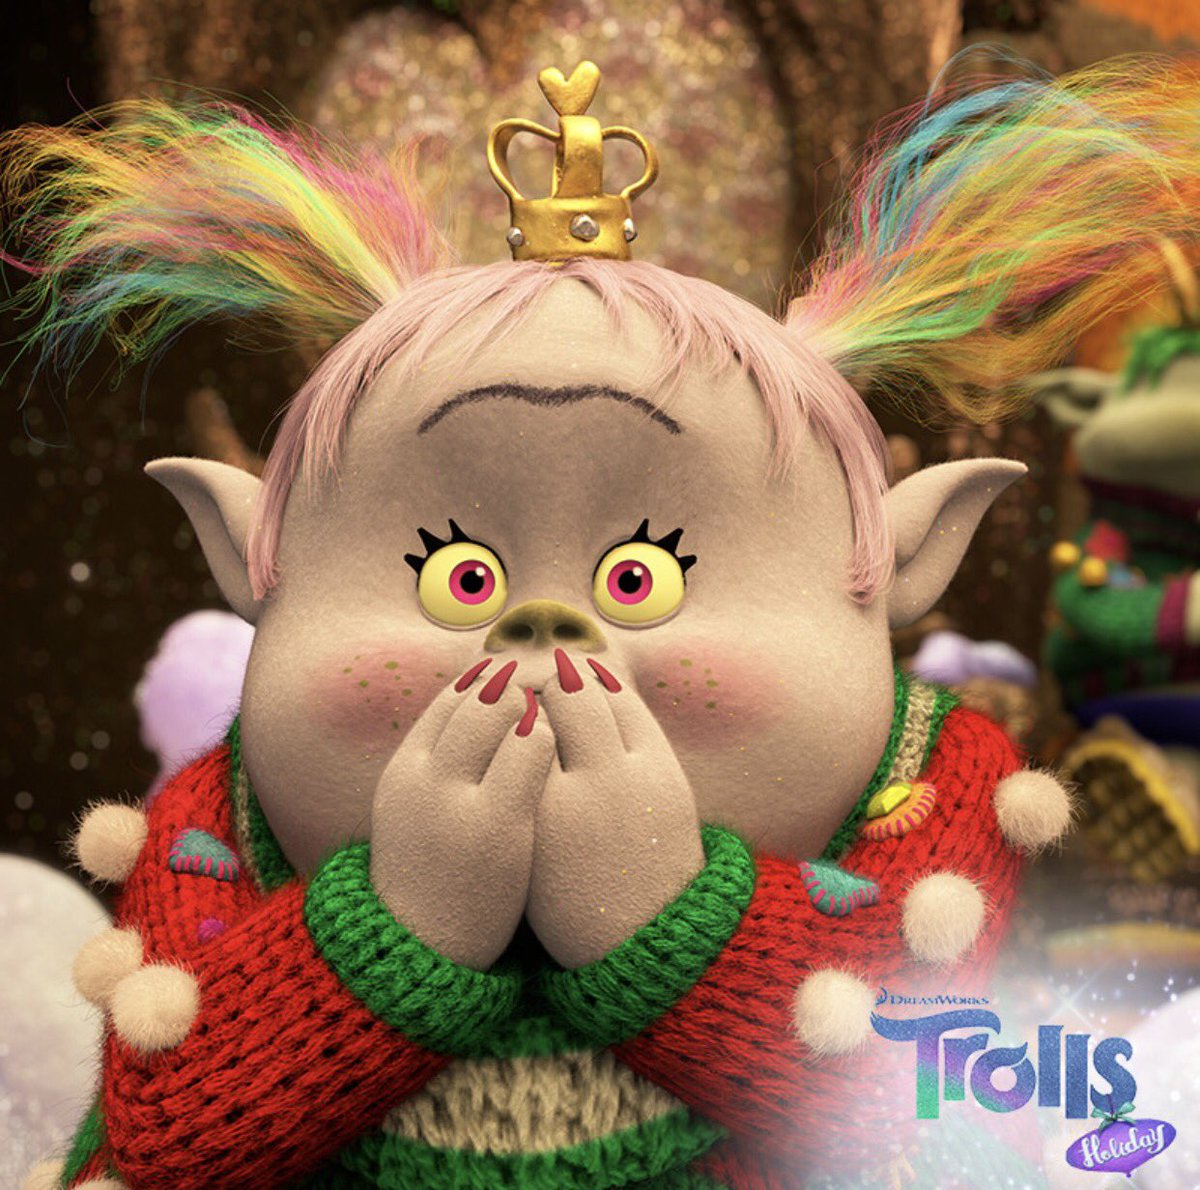 It's time to celebrate! #TrollsHoliday airs tonight on @NBC at 8:30/7:30c